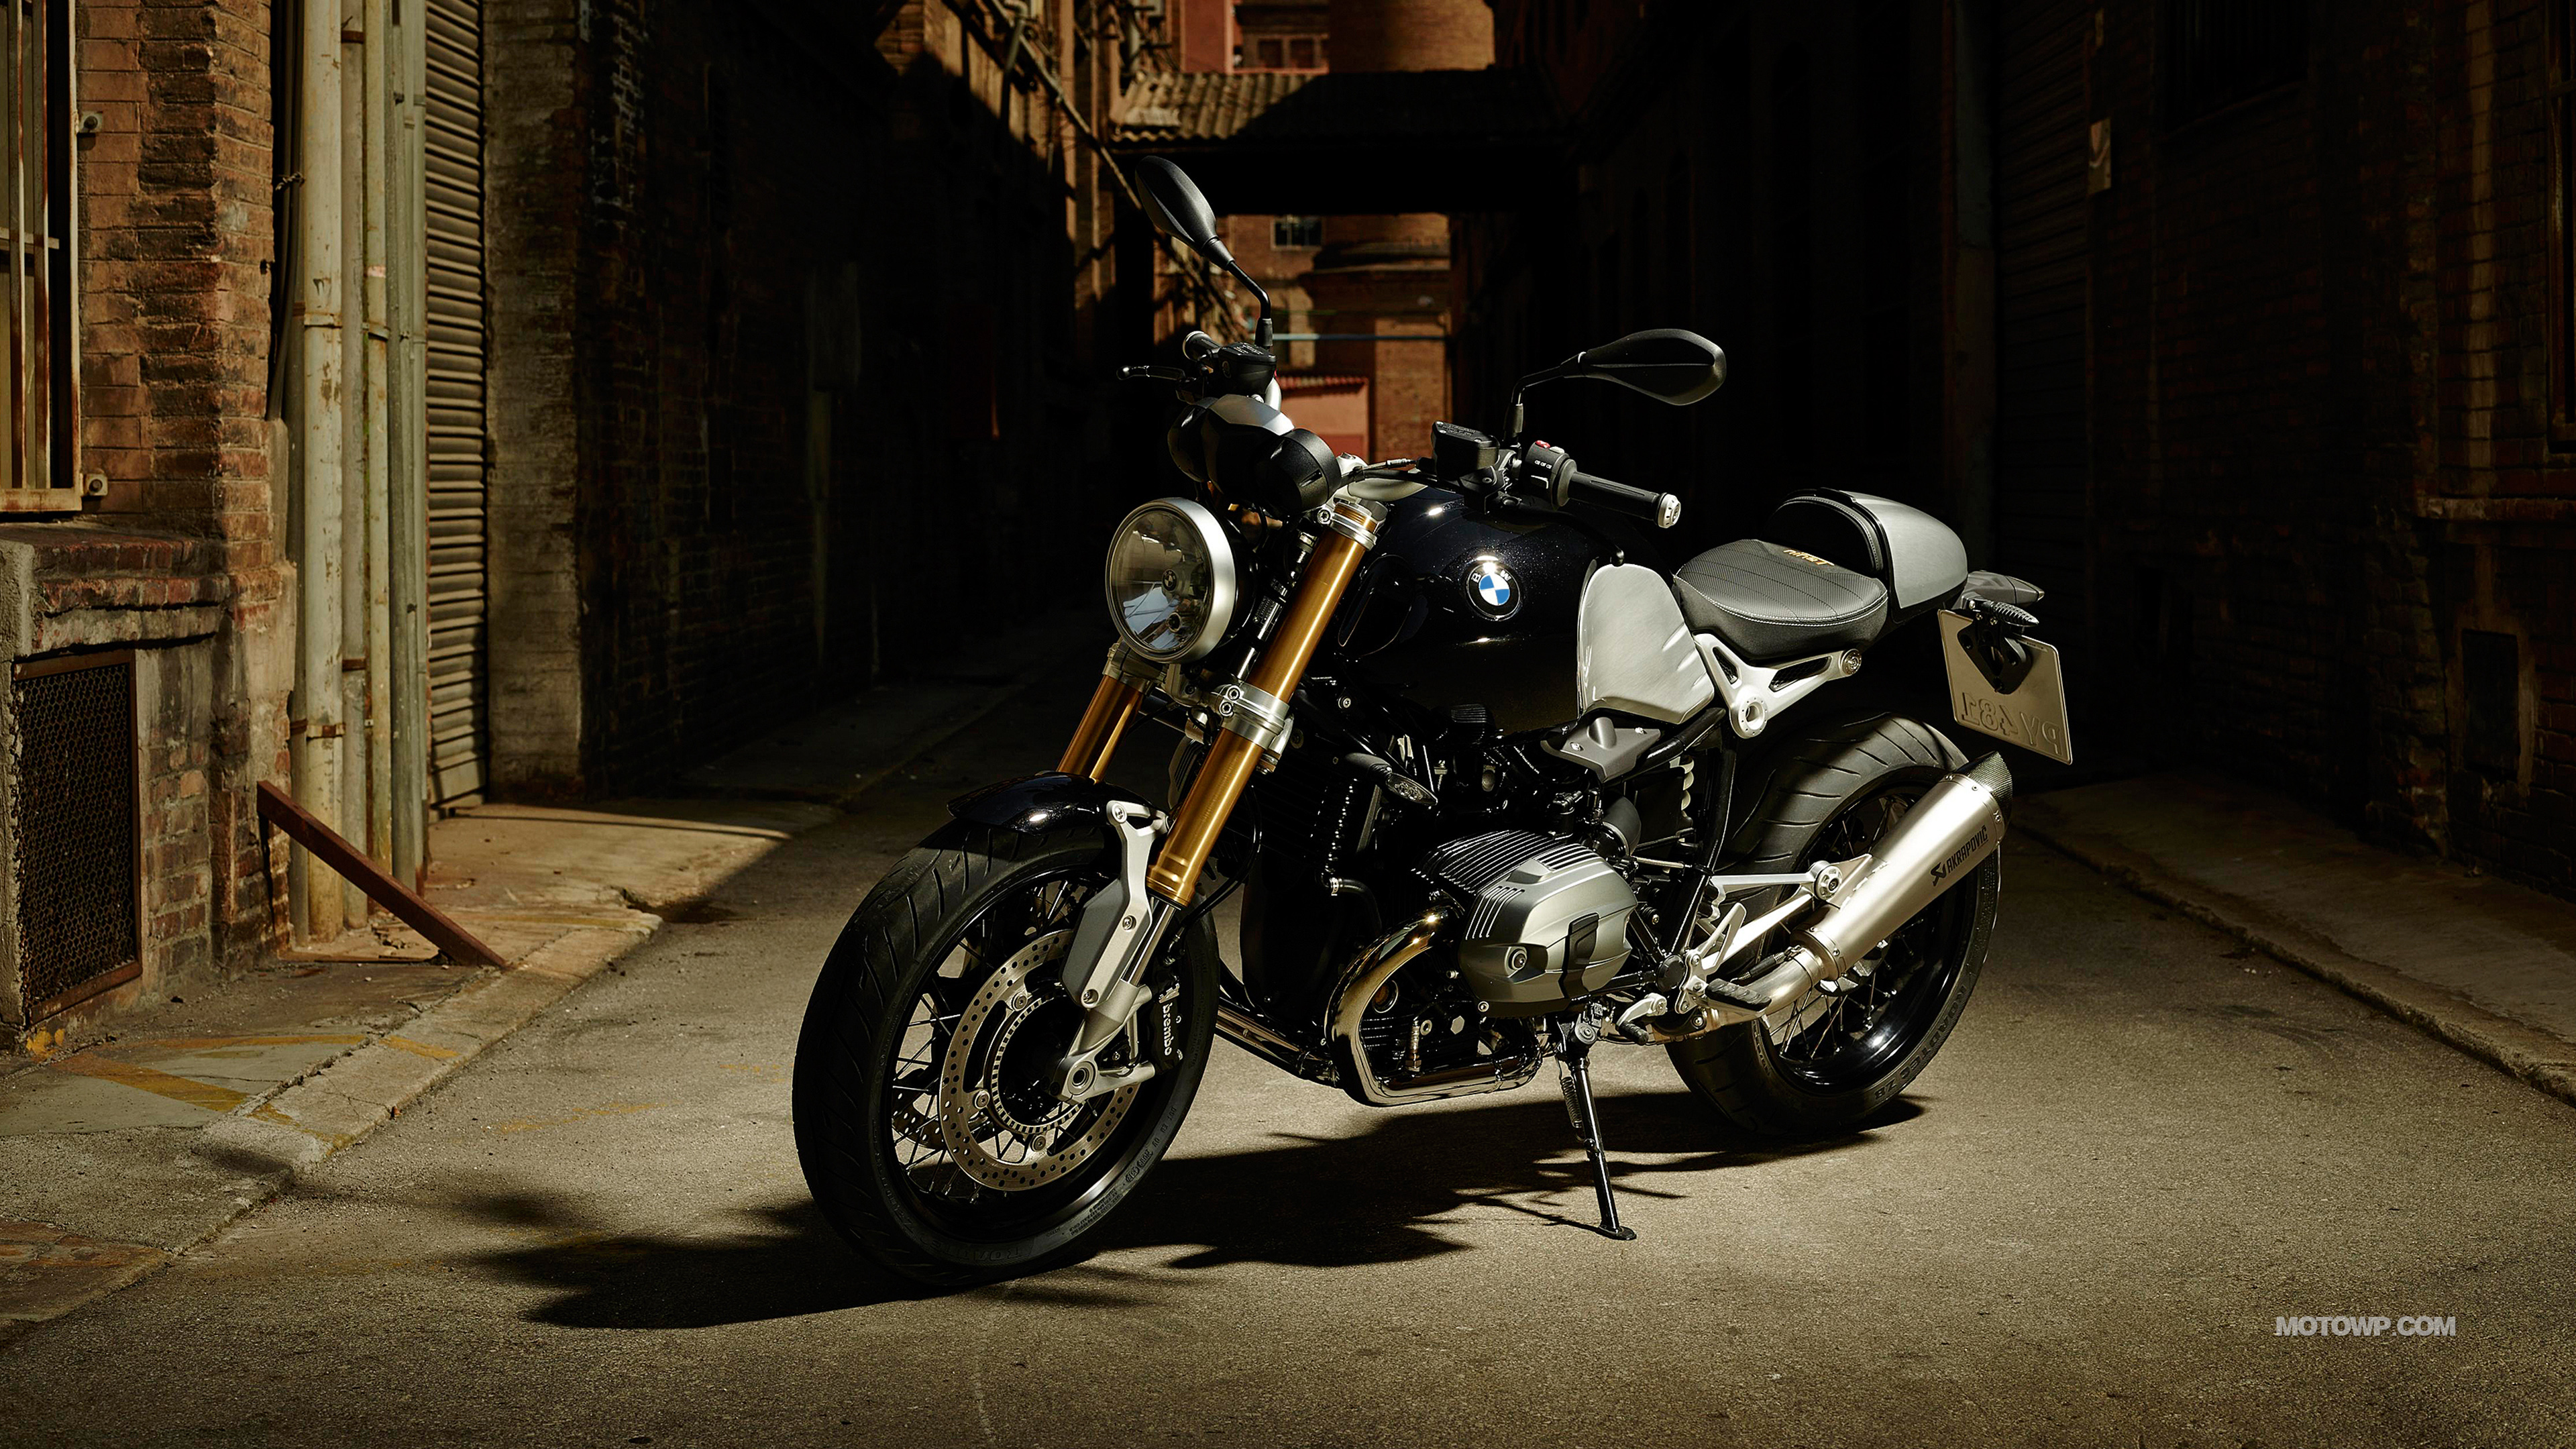 Motorcycles Wallpapers BMW R NineT